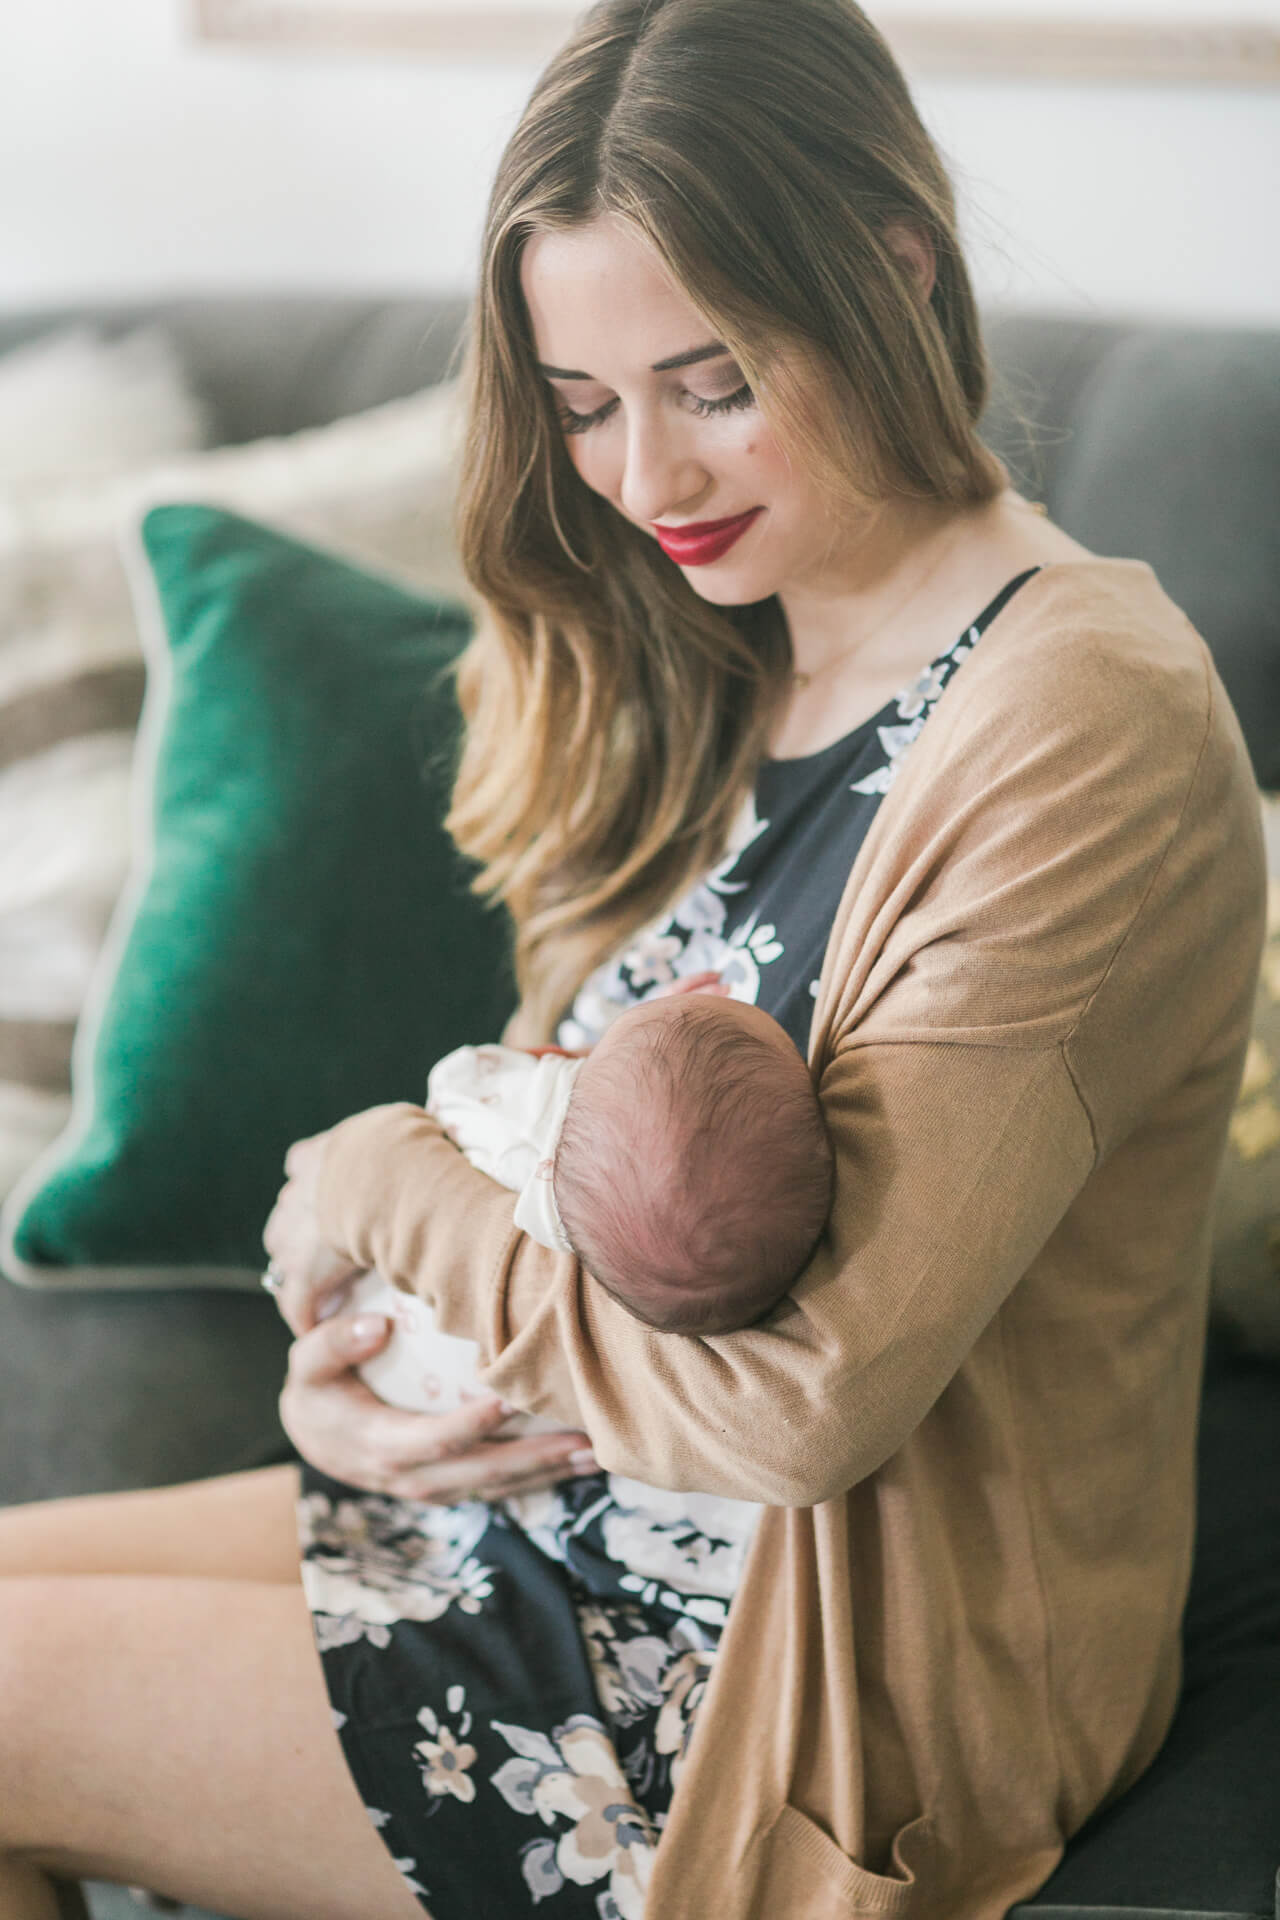 6 Things I Didn't Realize About Having a Baby